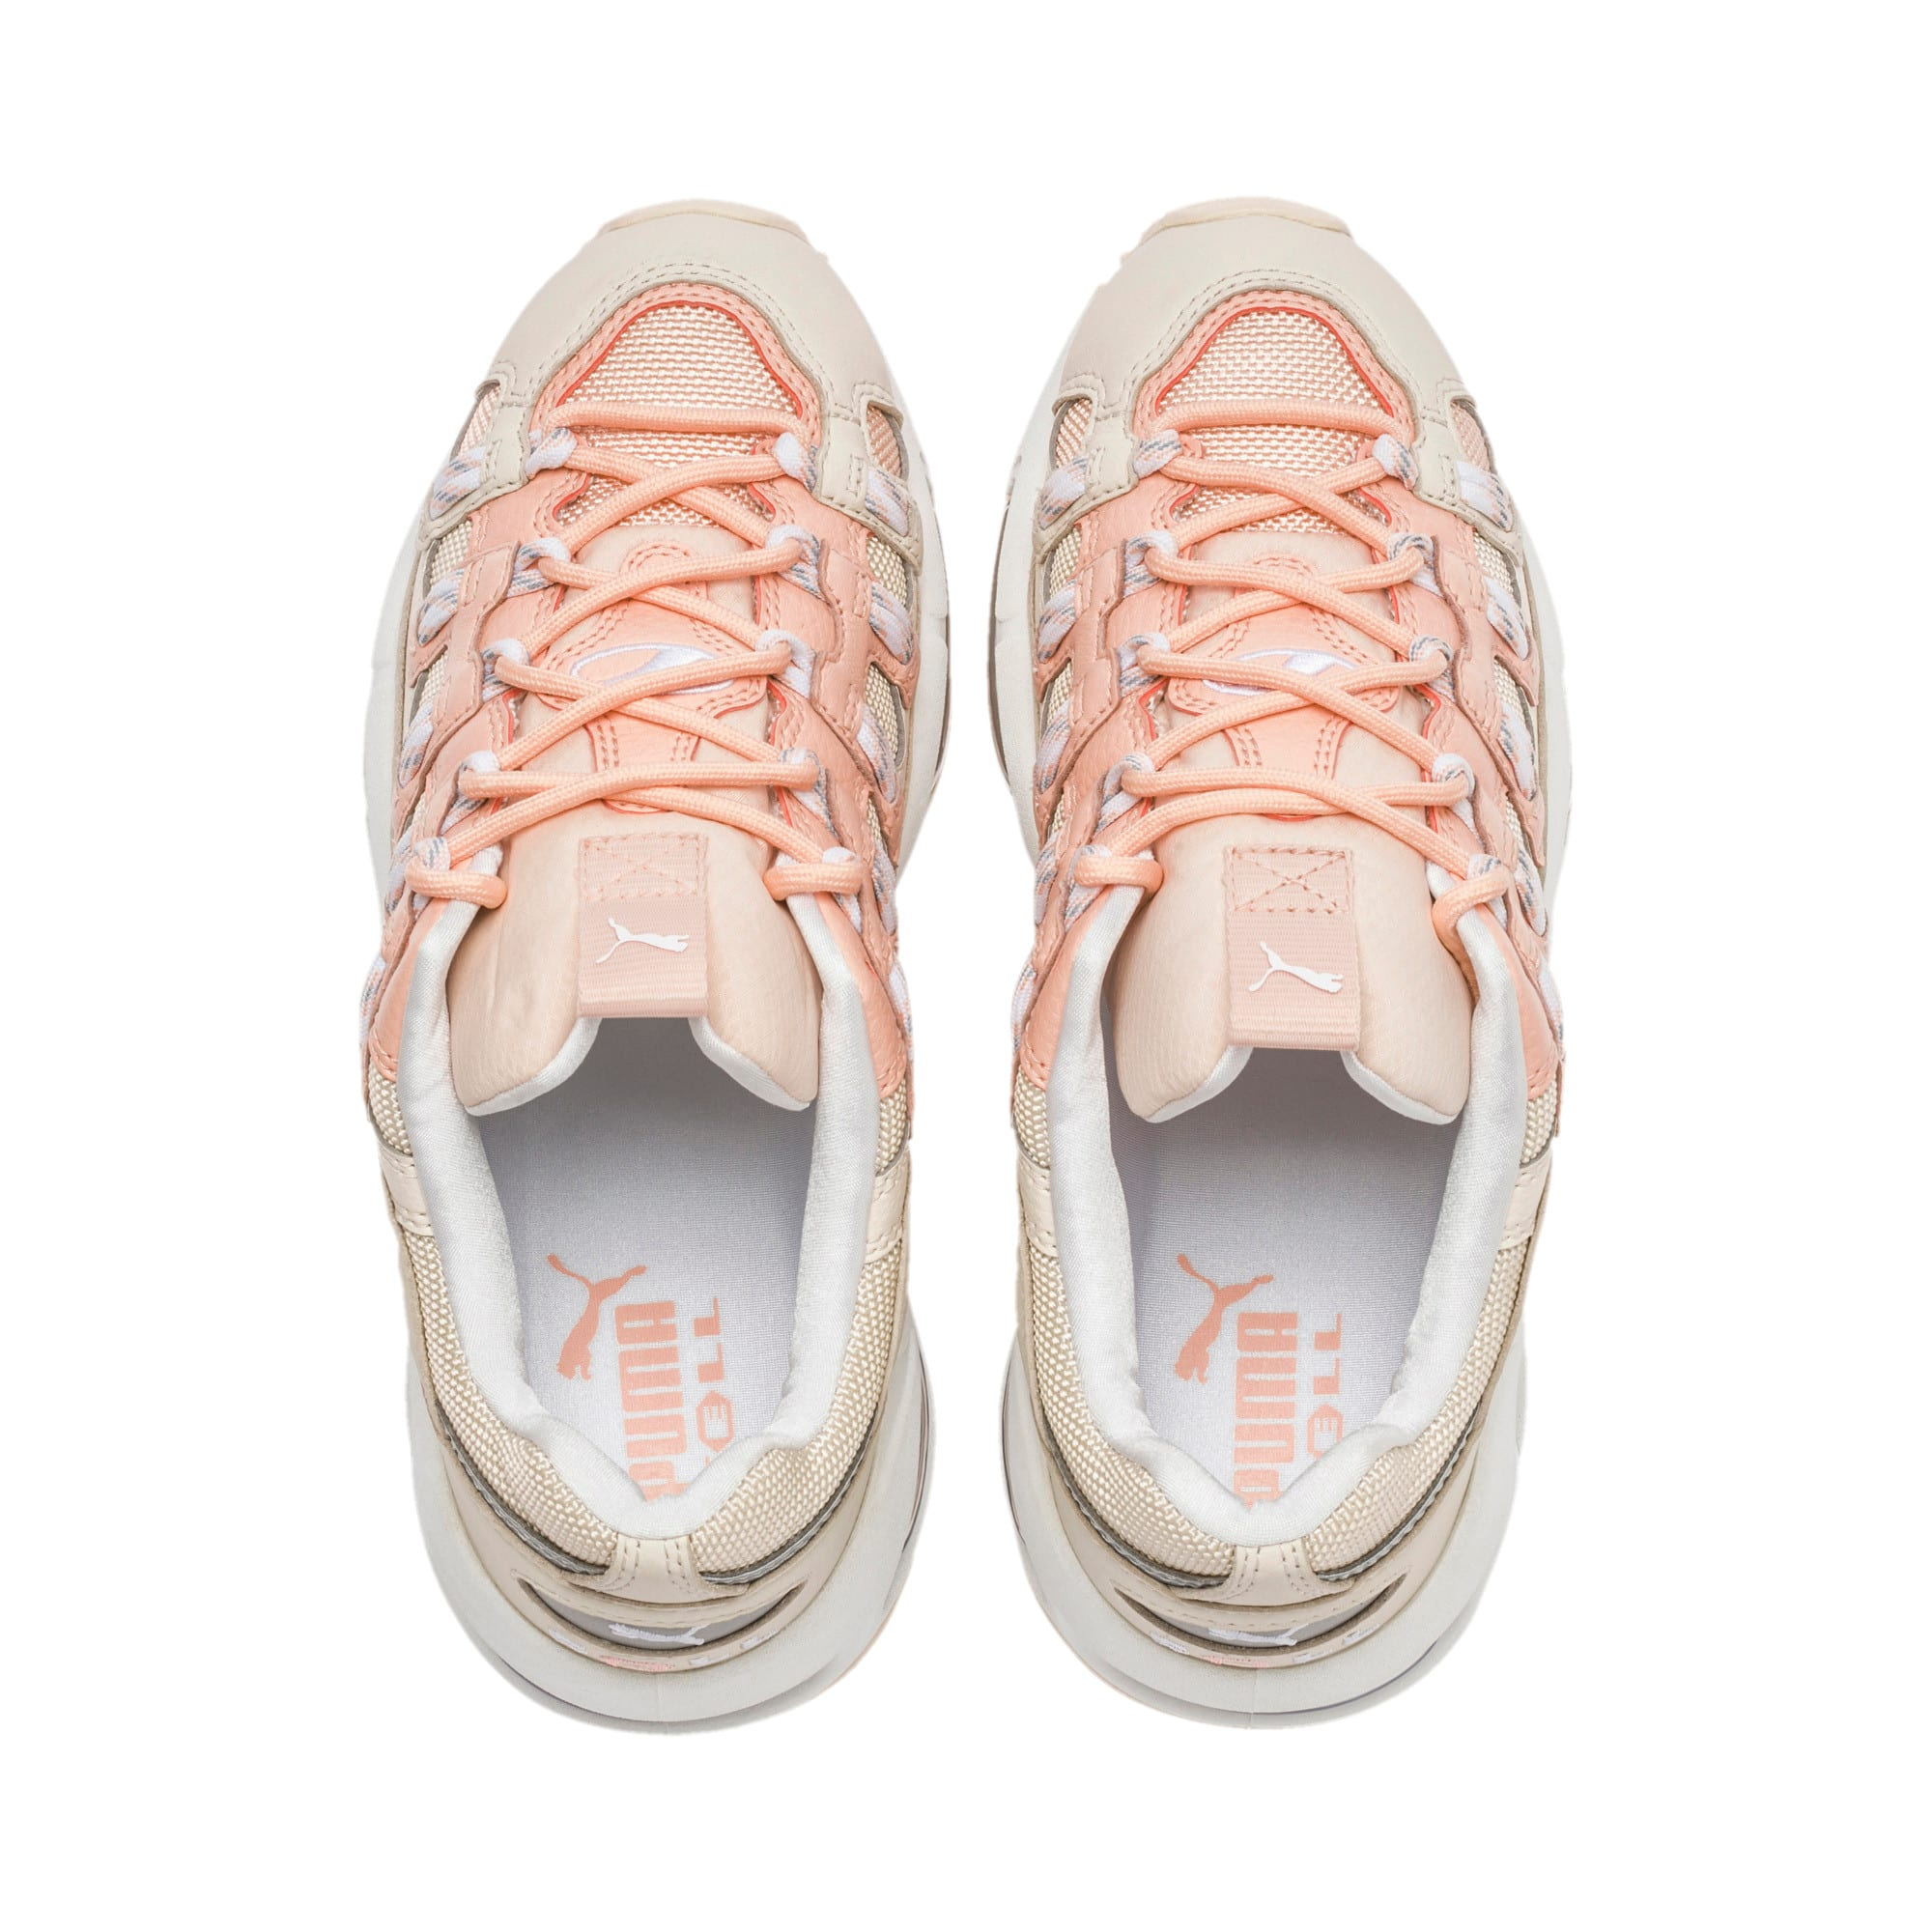 Thumbnail 7 of Scarpe da ginnastica CELL Endura Rebound, Peach Parfait-White Smoke, medium